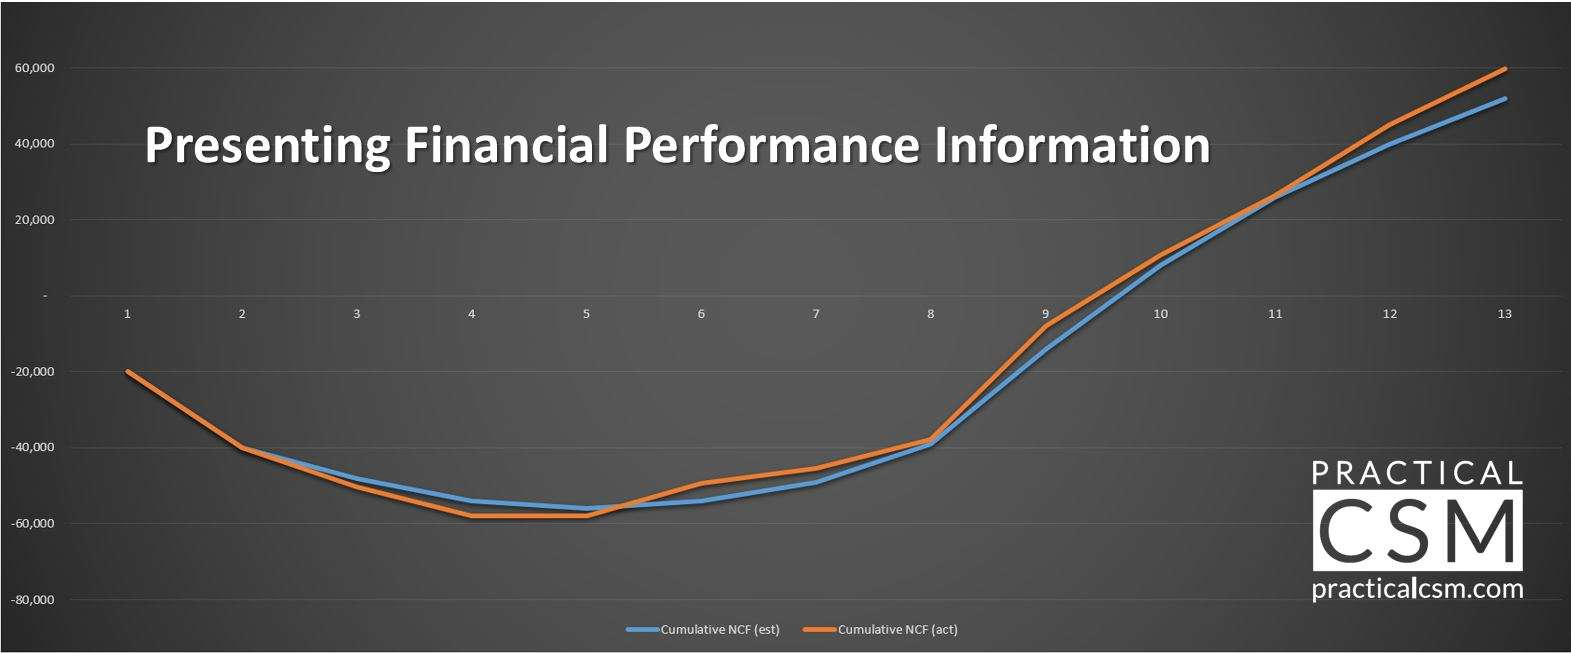 Presenting Financial Performance Information